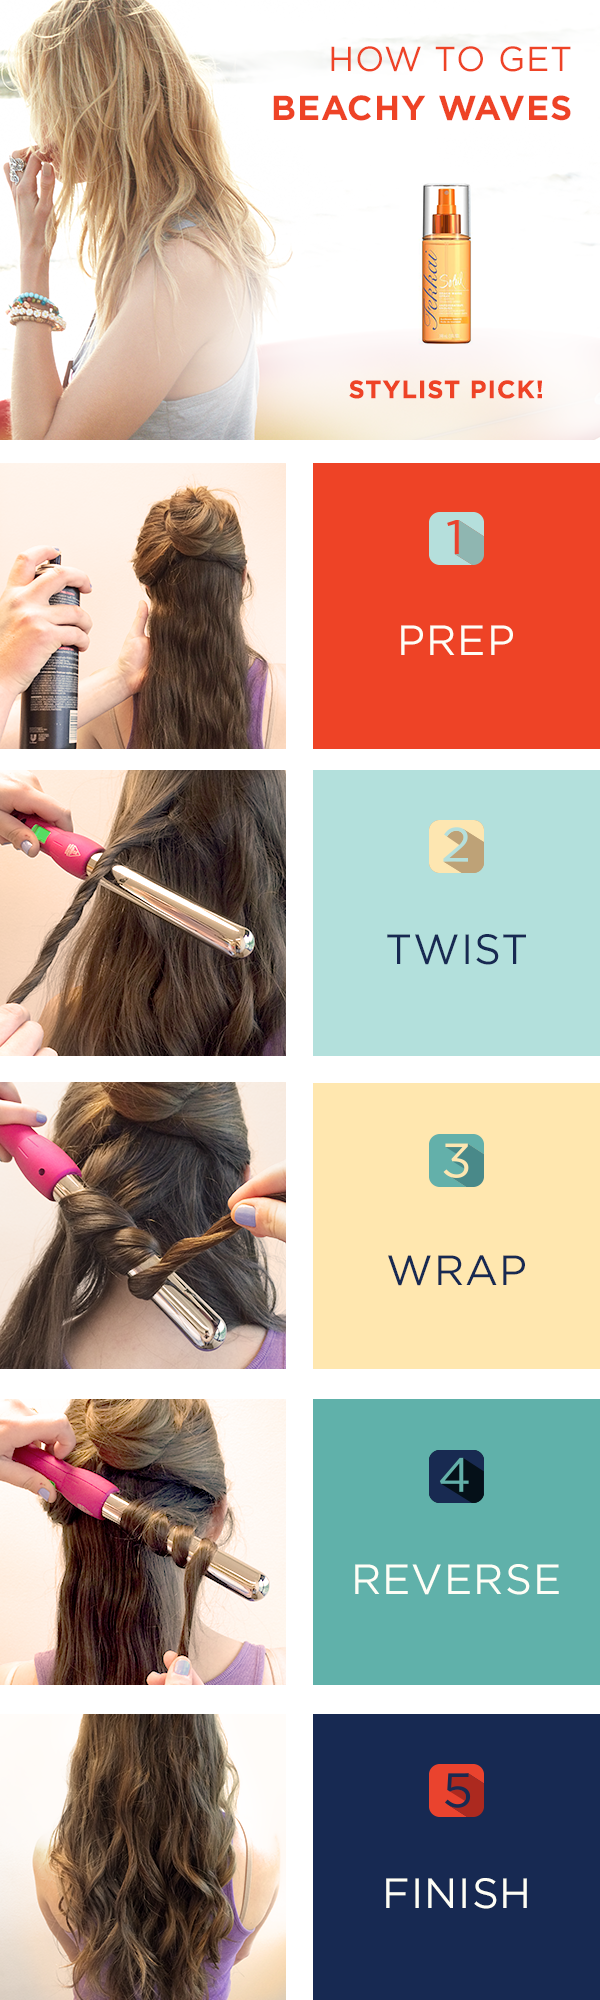 Our Favorite Summer Hair Style Beachy Waves They Re